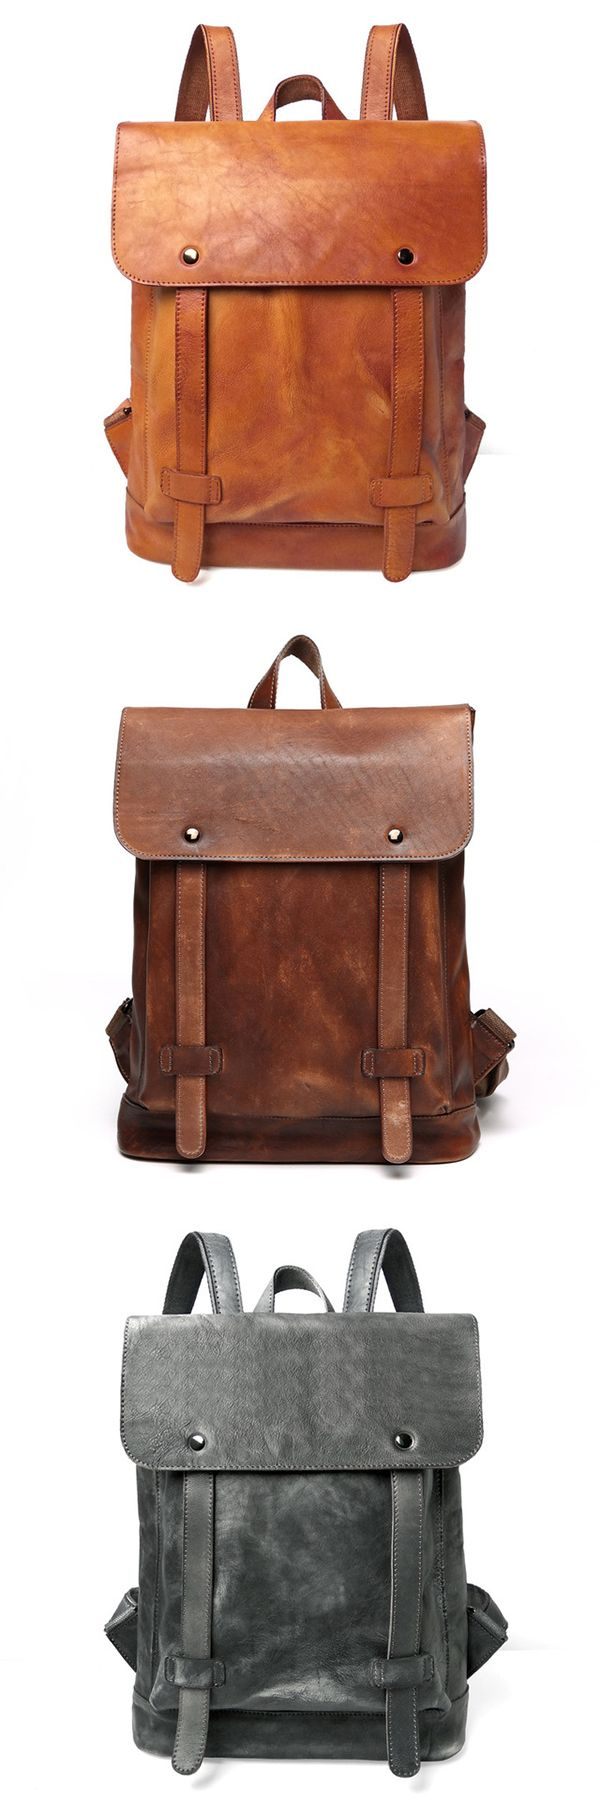 The Cooper Vintage Leather Backpack is crafted in an old-fashioned, preppy school bag style. This vintage backpack is made of high-quality genuine leather, giving it a unique vintage look. With many compartments, this cool vintage backpack fits a 15-inch laptop and can carry everything you need for your everyday use in an orderly fashion. The Cooper vintage leather backpack would be great as a laptop bag for school, college, work and everyday use.